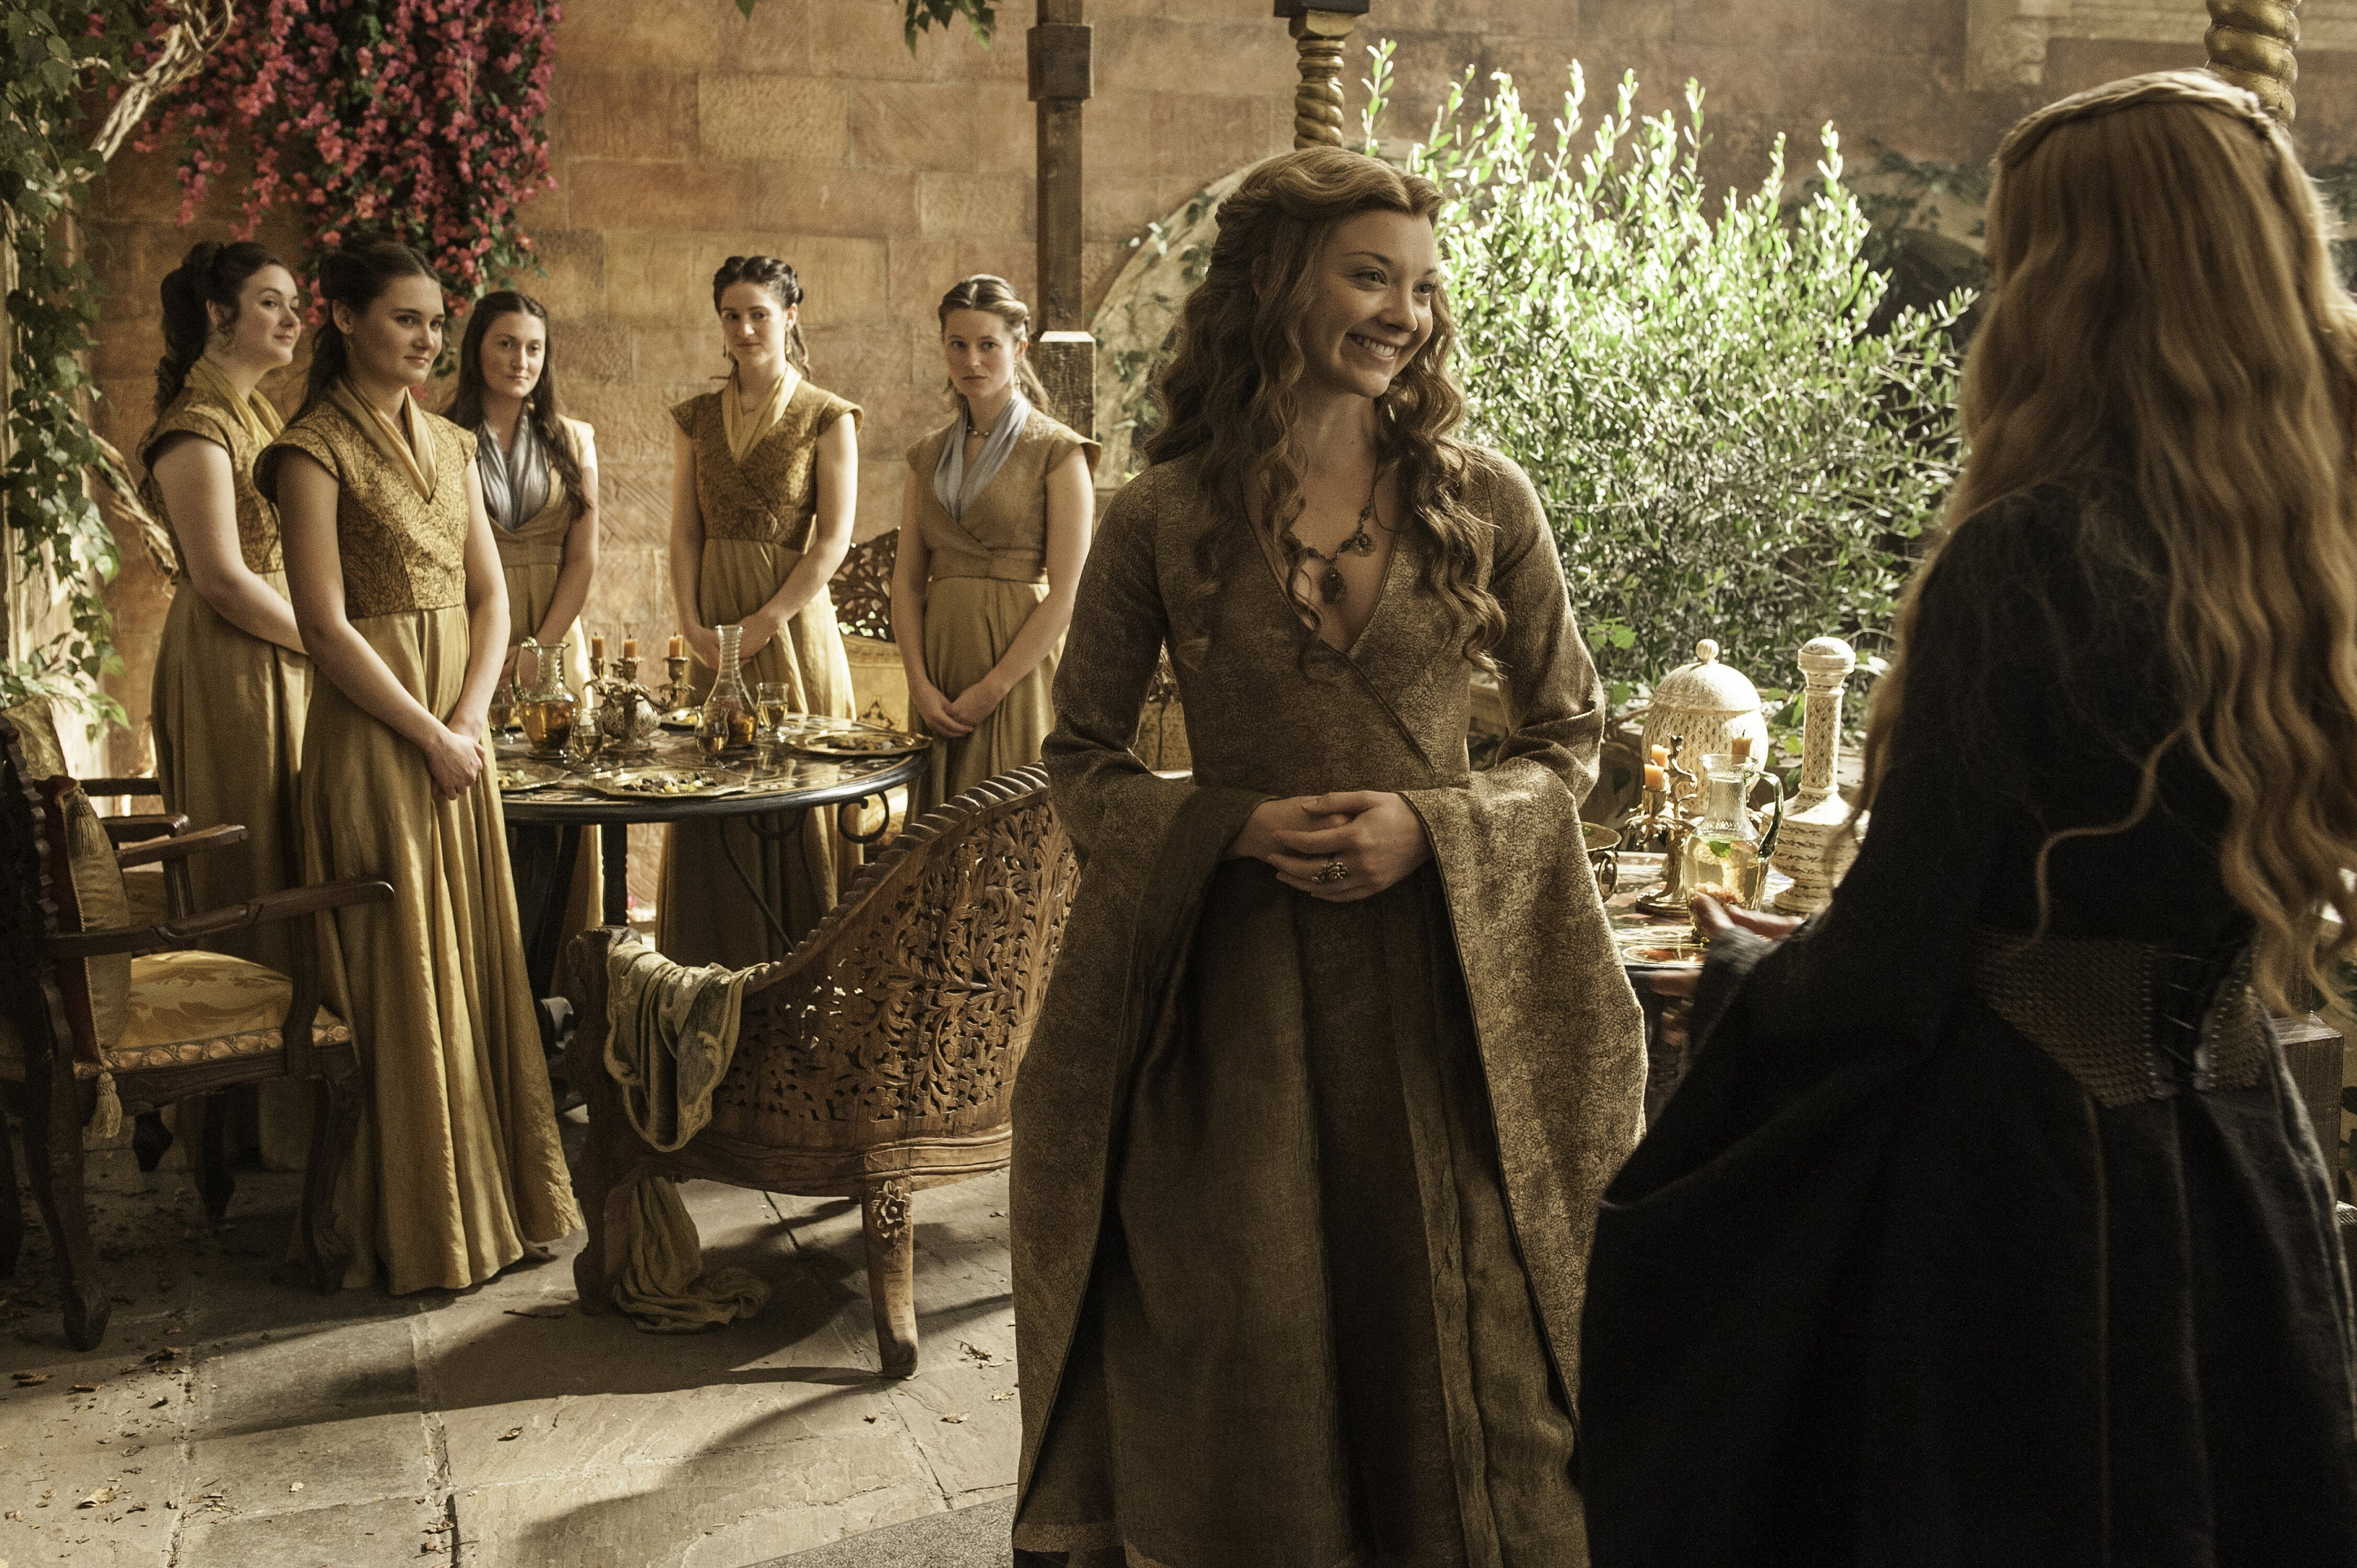 Natalie Dormer signs a big drama development deal, and other Game of Thrones cast member news